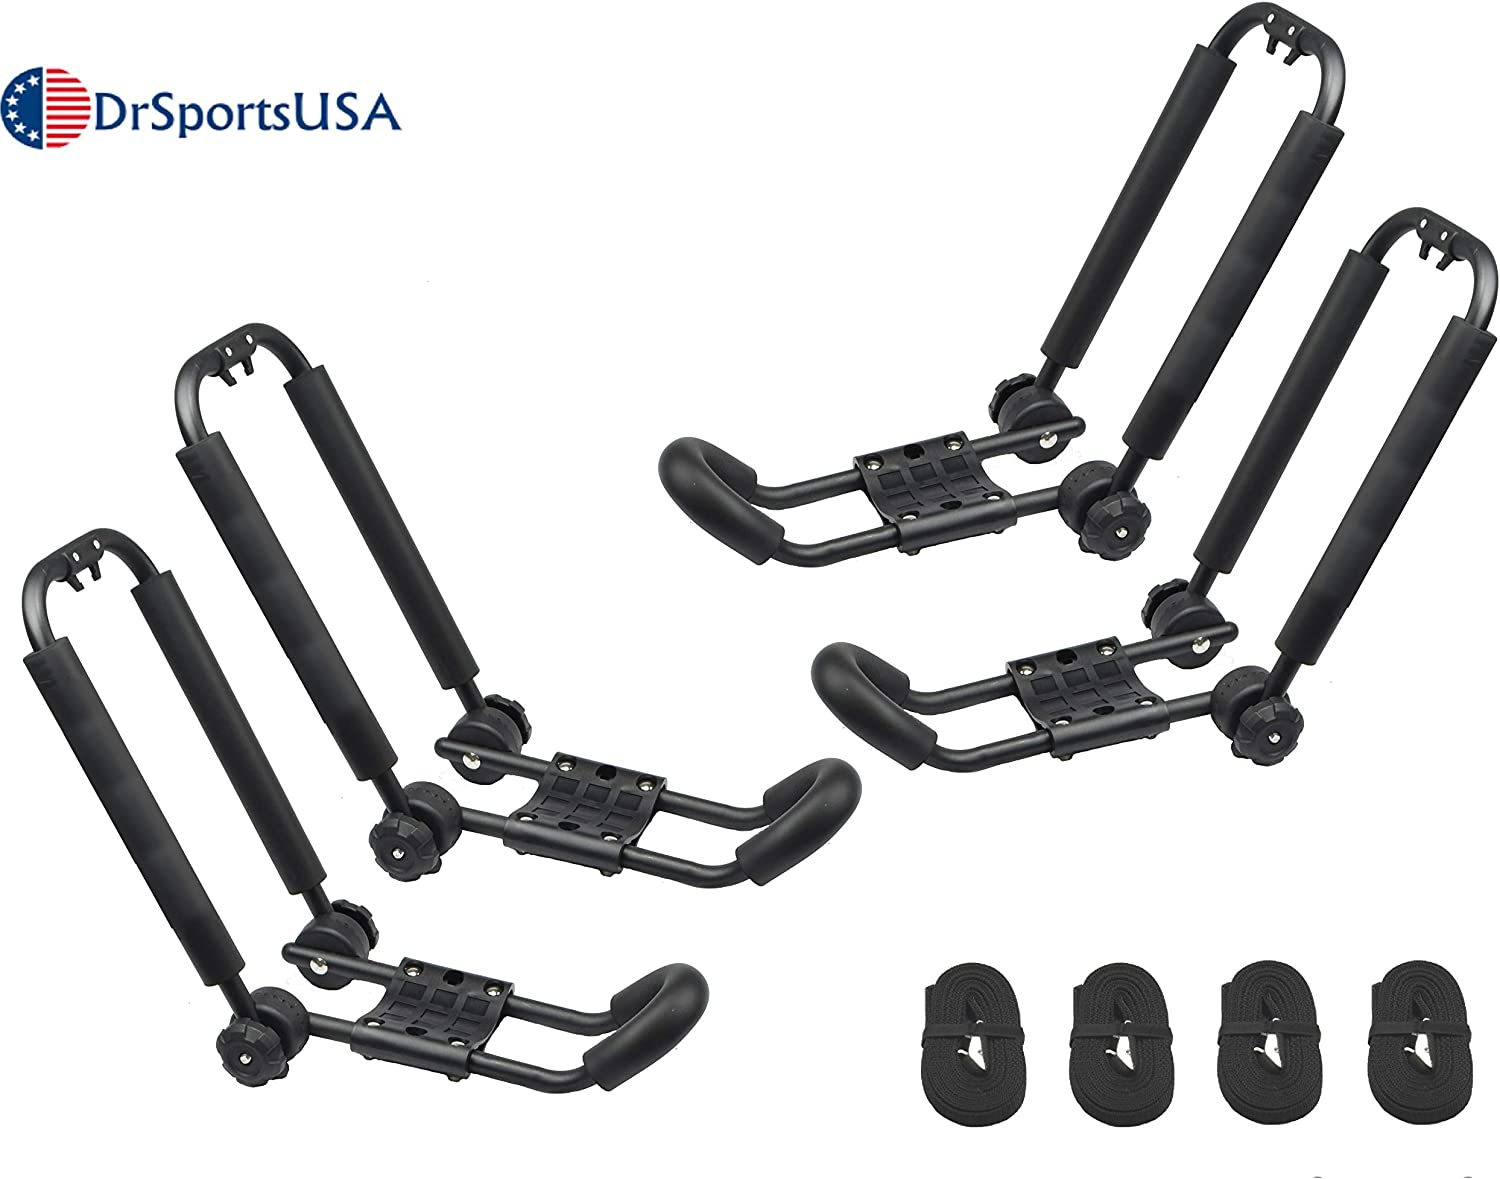 SUP Kayaks Car and Truck DrSportsUSA Universal Foldable J-Bar 2 Pairs Kayak Rack Folding Car Roof Top Carrier for Canoe Surfboard and Ski Board Rooftop Mount on SUV